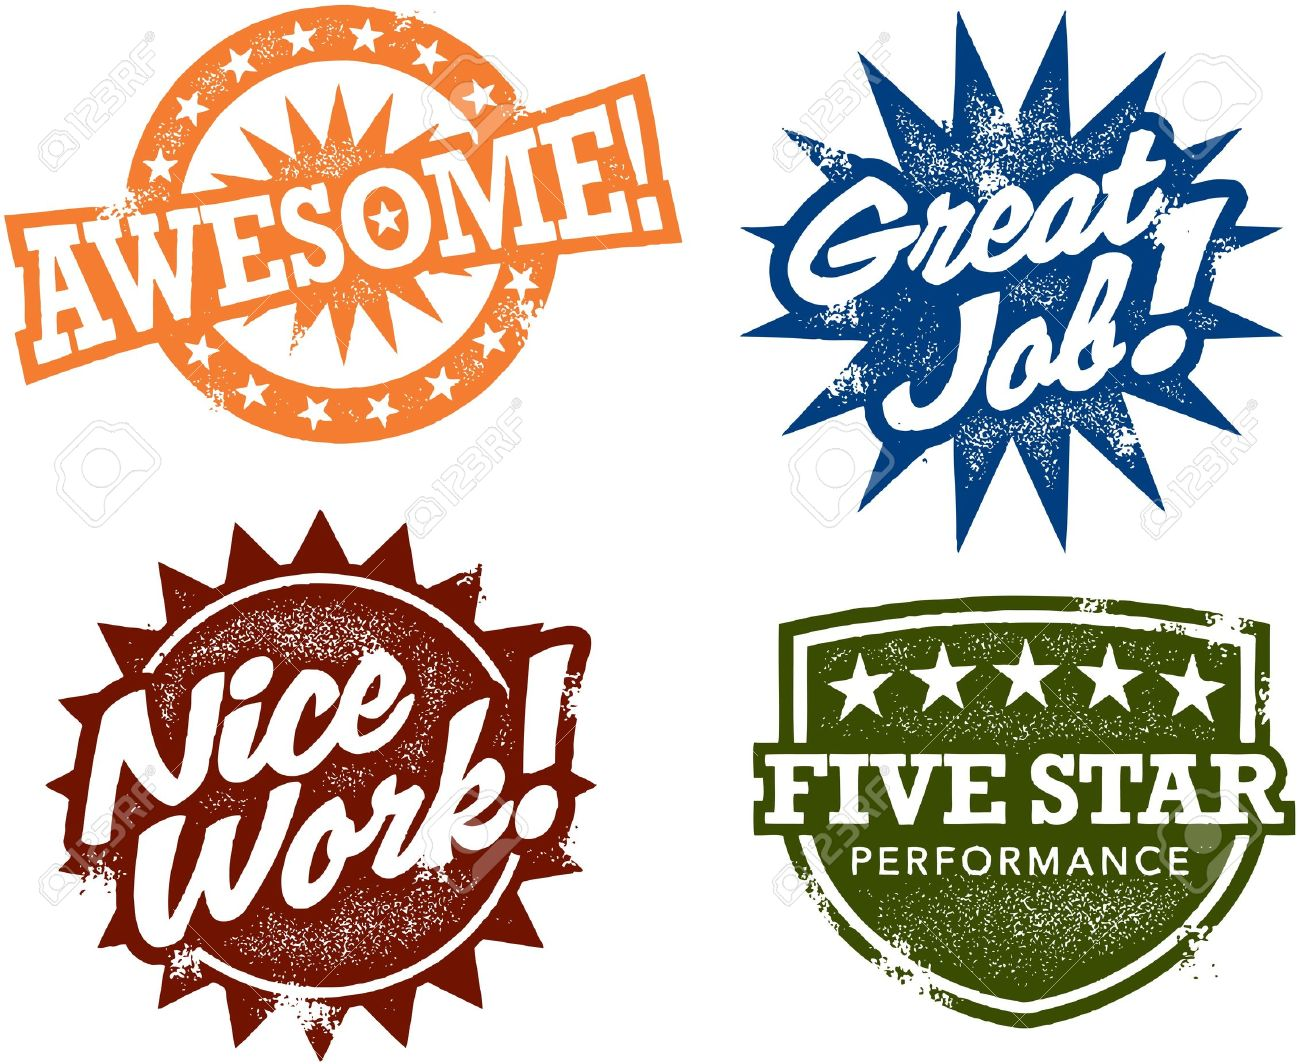 Awesome Work Stamps Stock Vector - 11602903